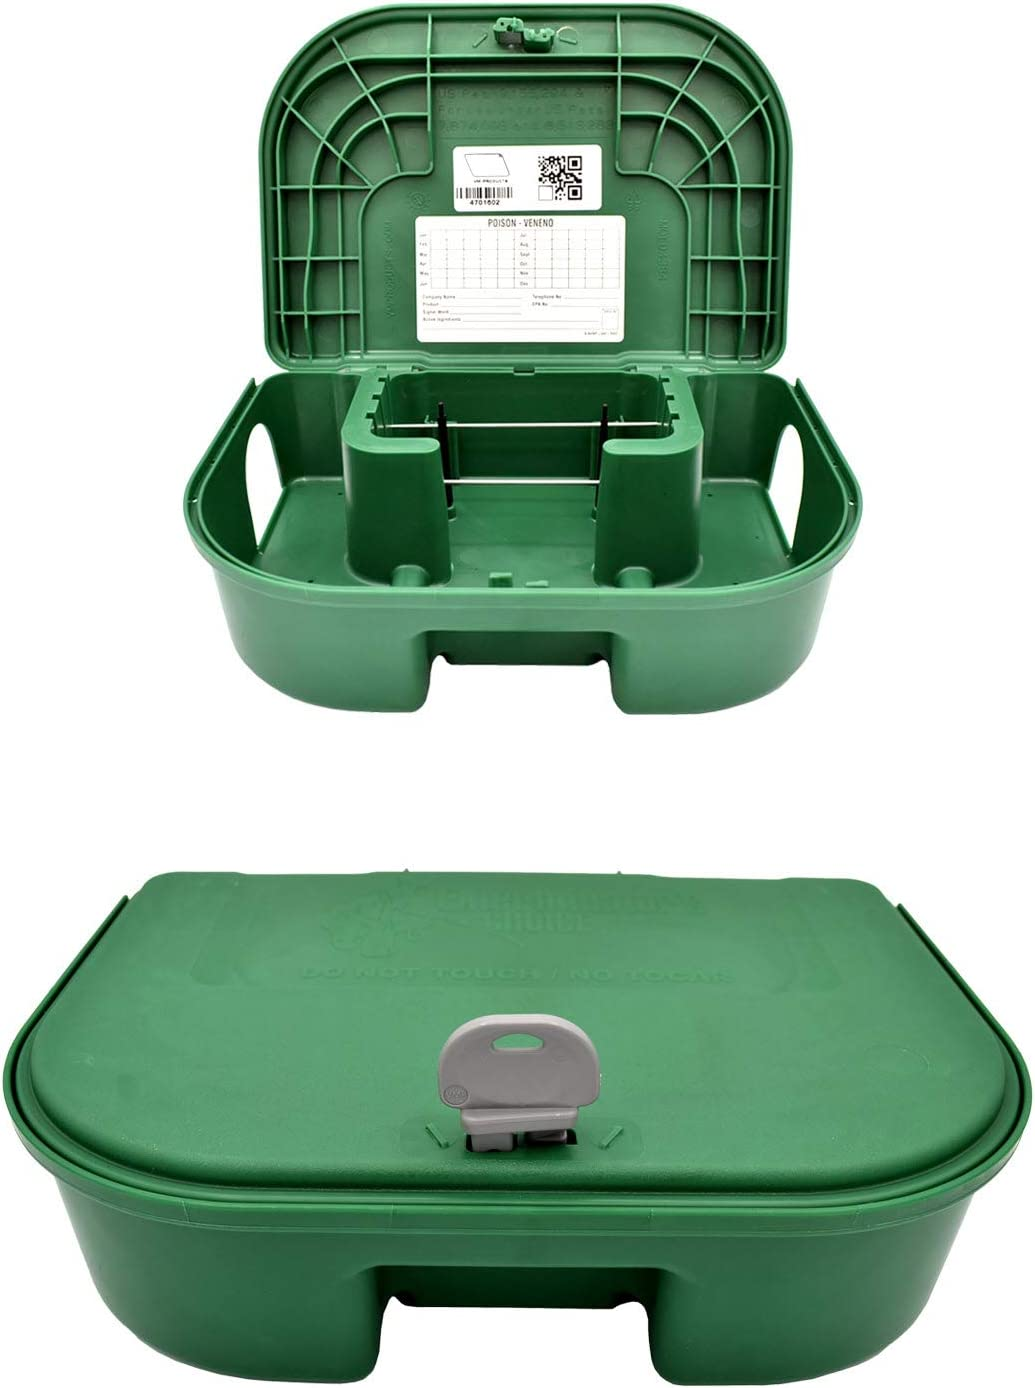 Exterminators Choice Bait Stations and One Key Included Bait Box Heavy Duty for Rats Mice and Other Pests Bait not Included…